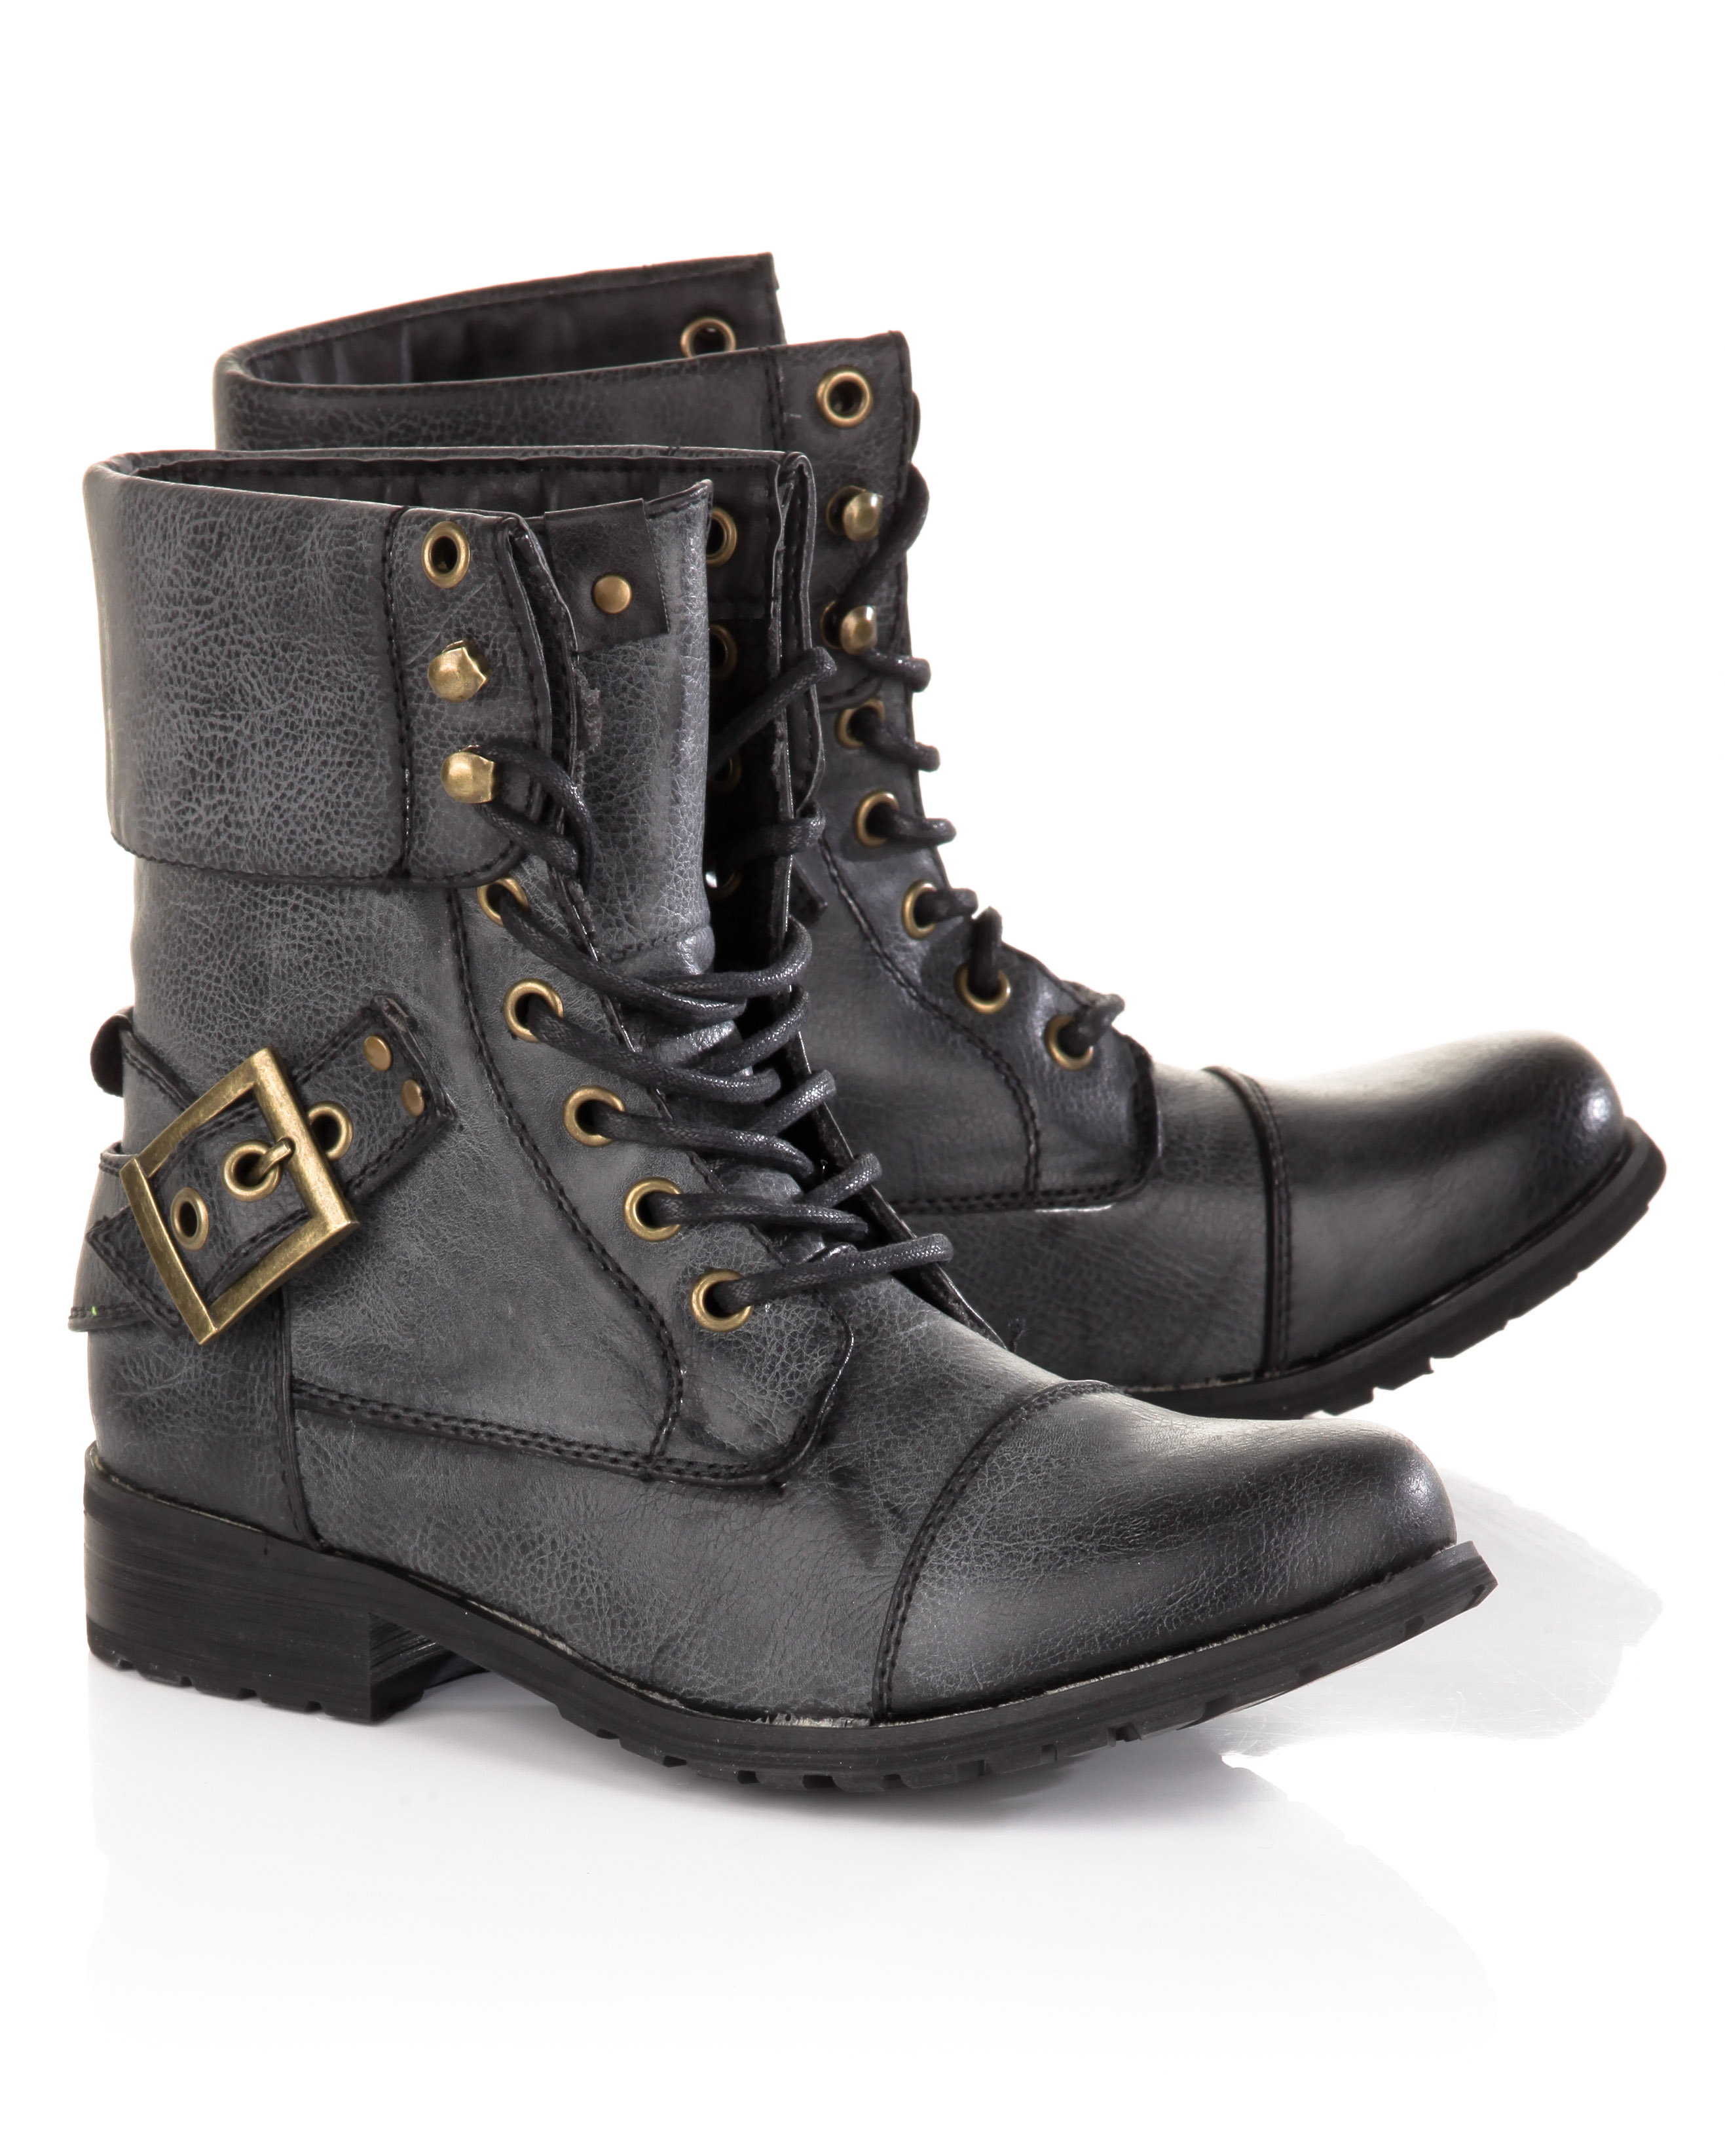 Lastest WOMENS COMBAT ARMY MILITARY BIKER FLAT LACE UP WORKER ANKLE BOOTS